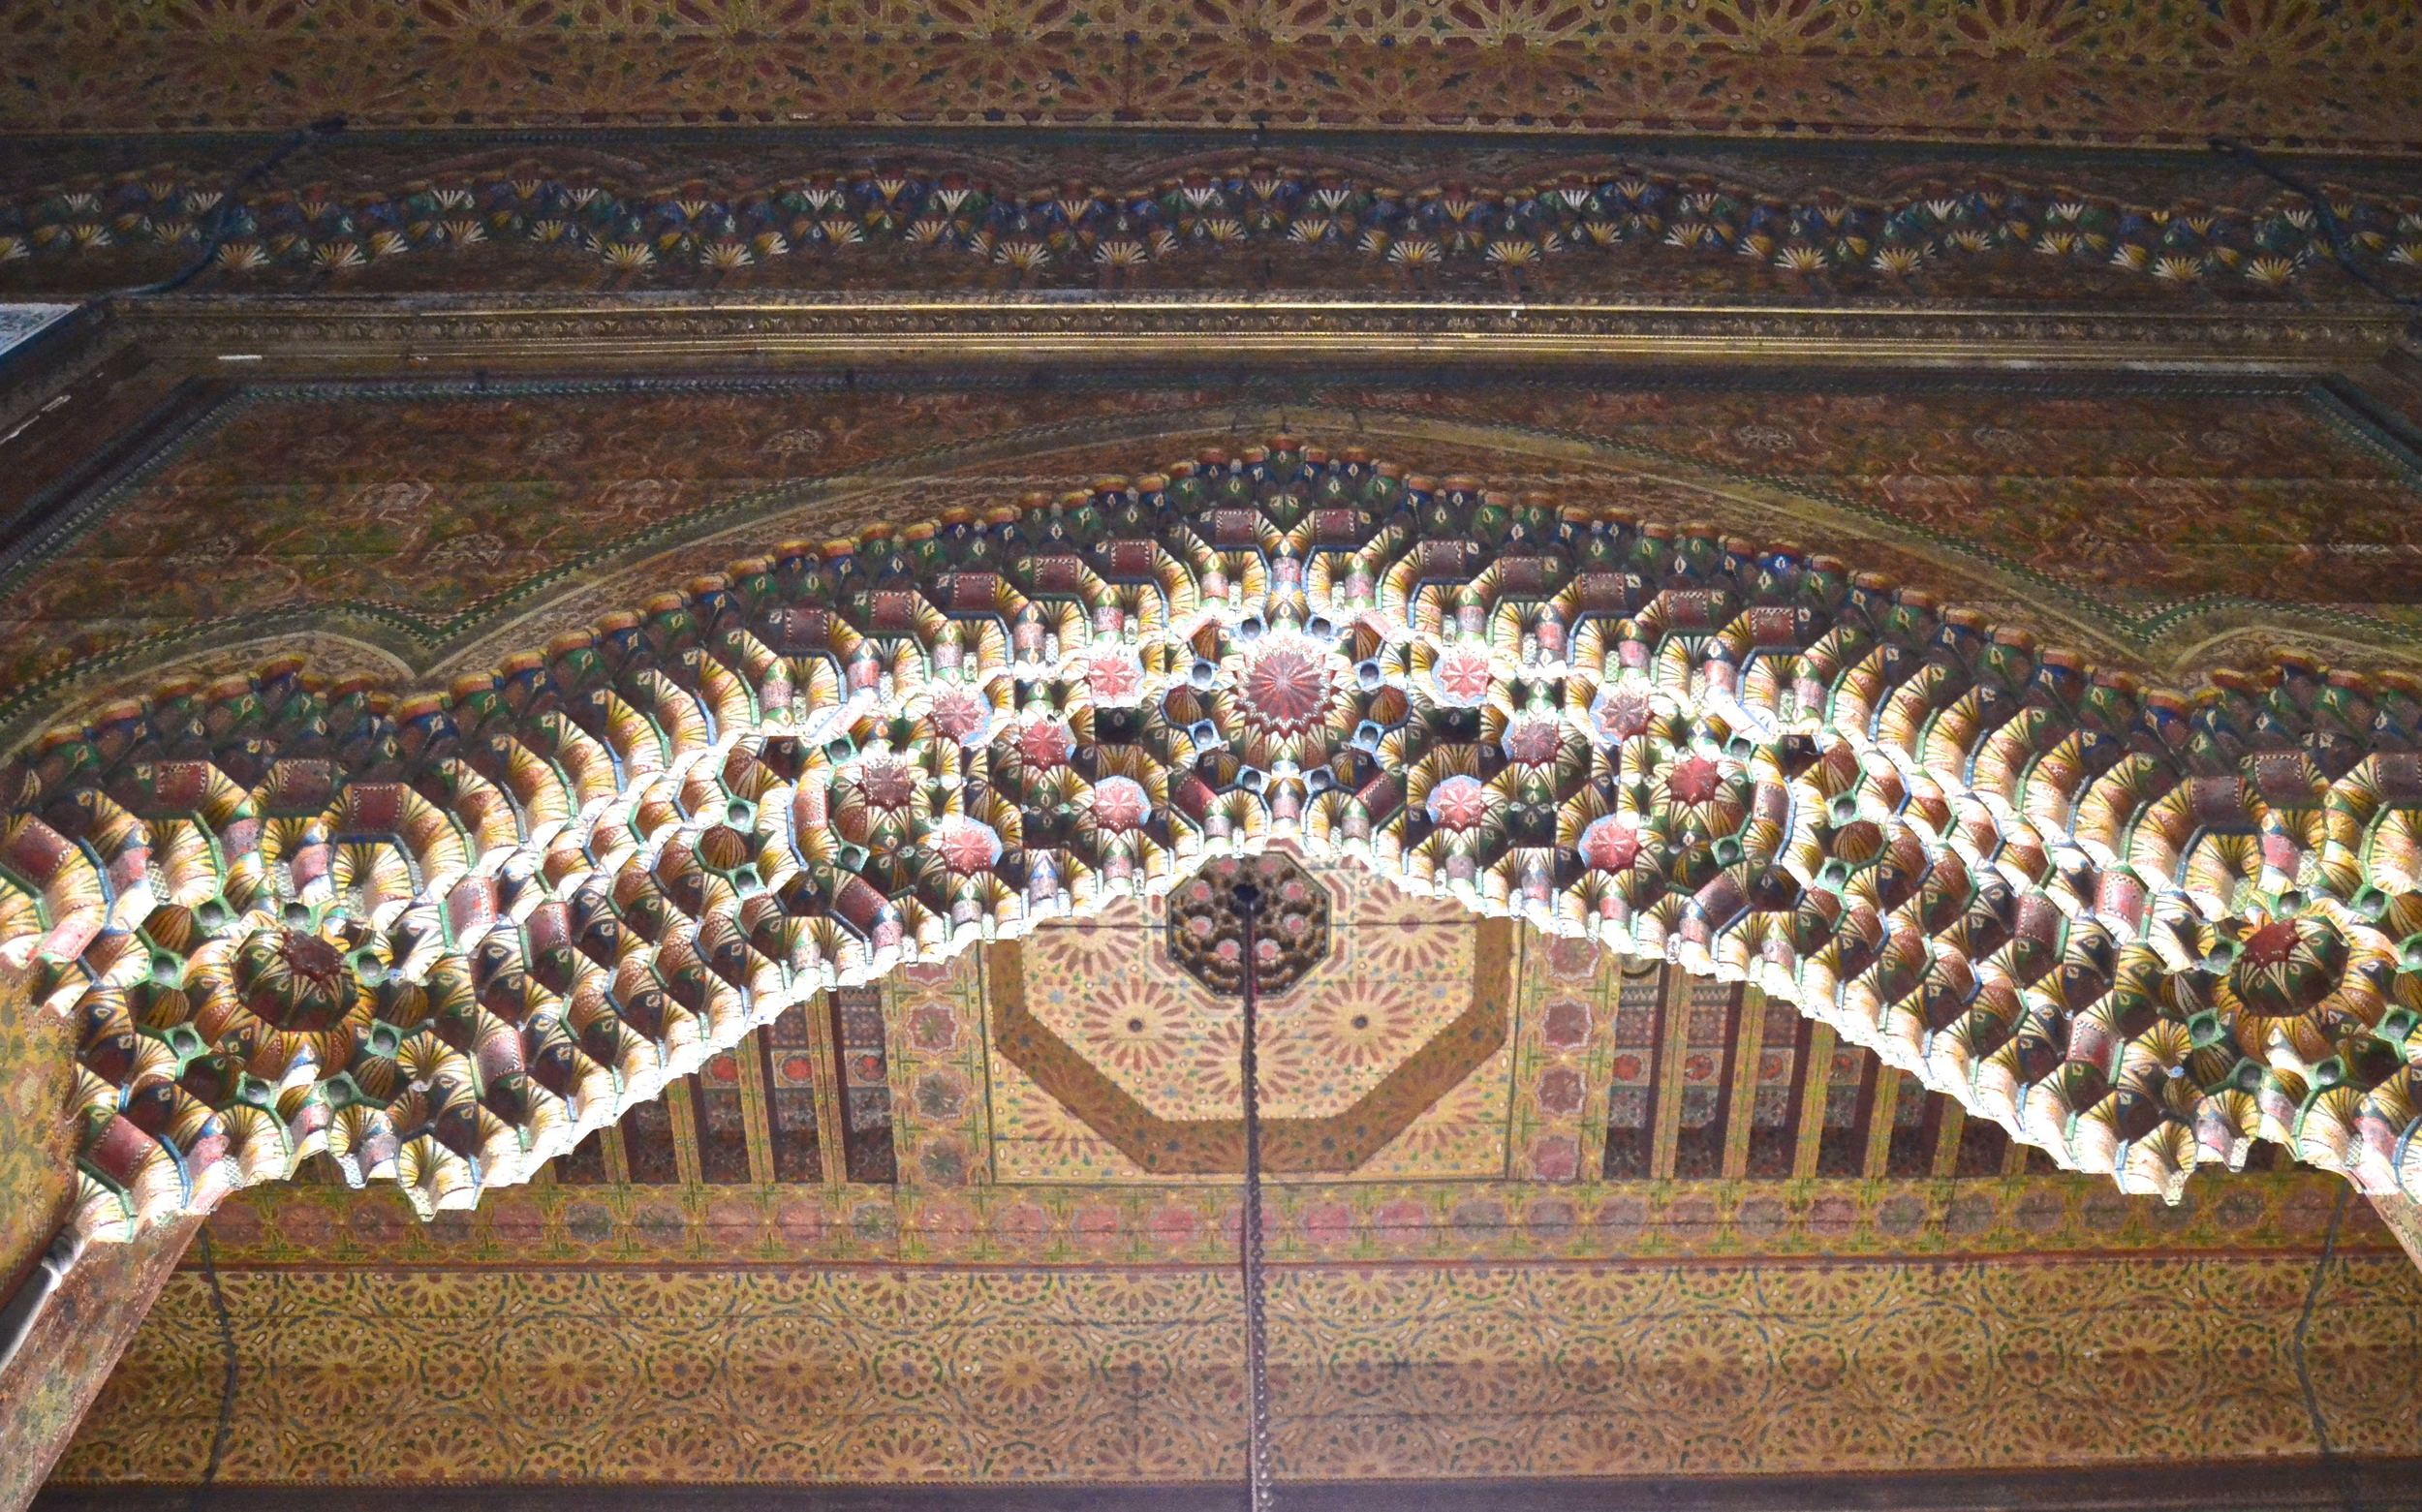 The Glaoui Palace Roof Detail